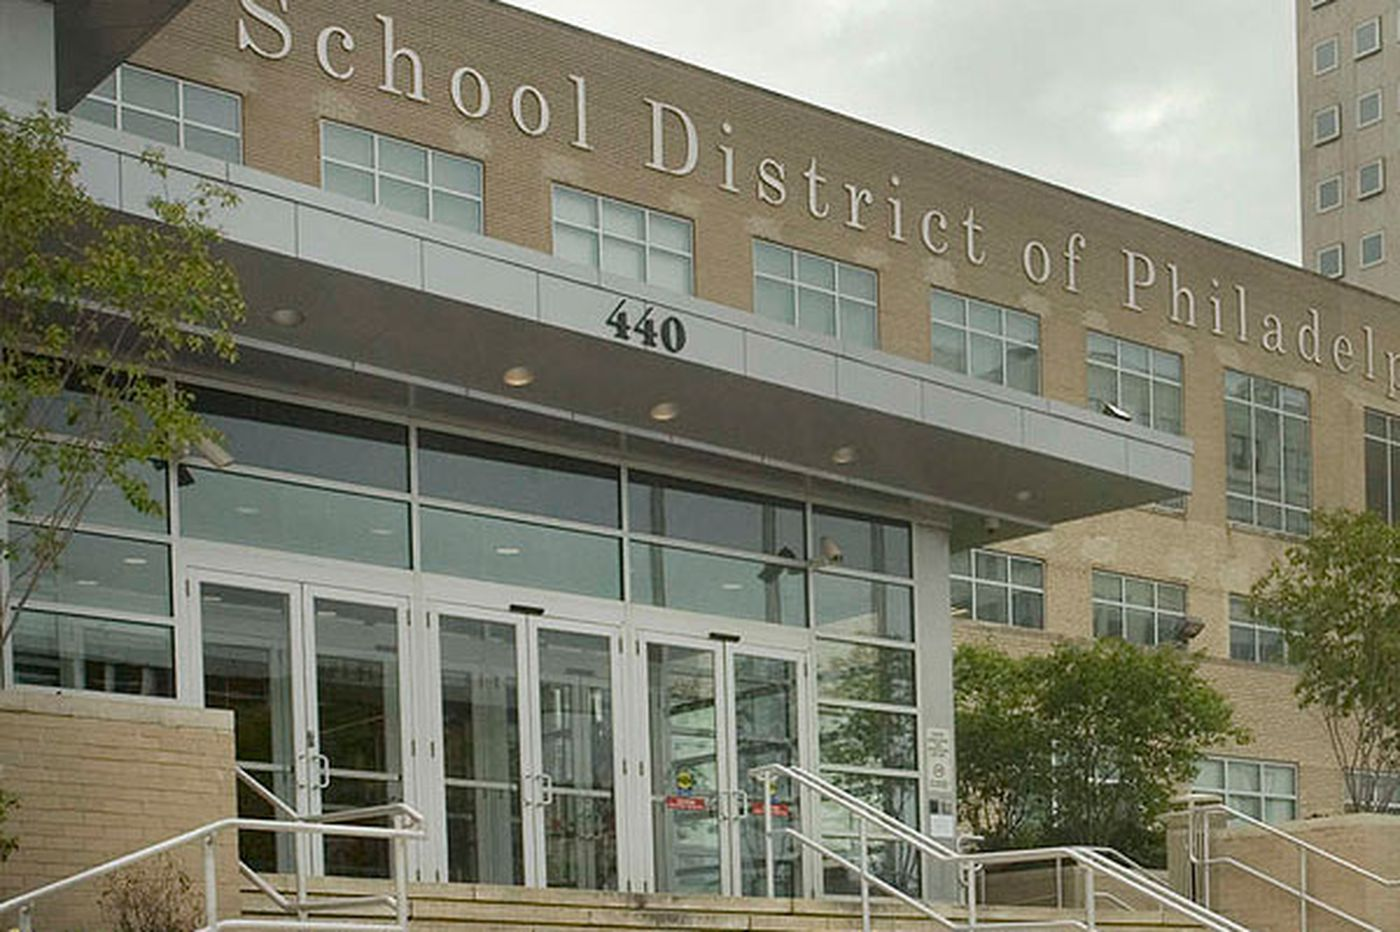 Advocacy groups file federal lawsuit against school district